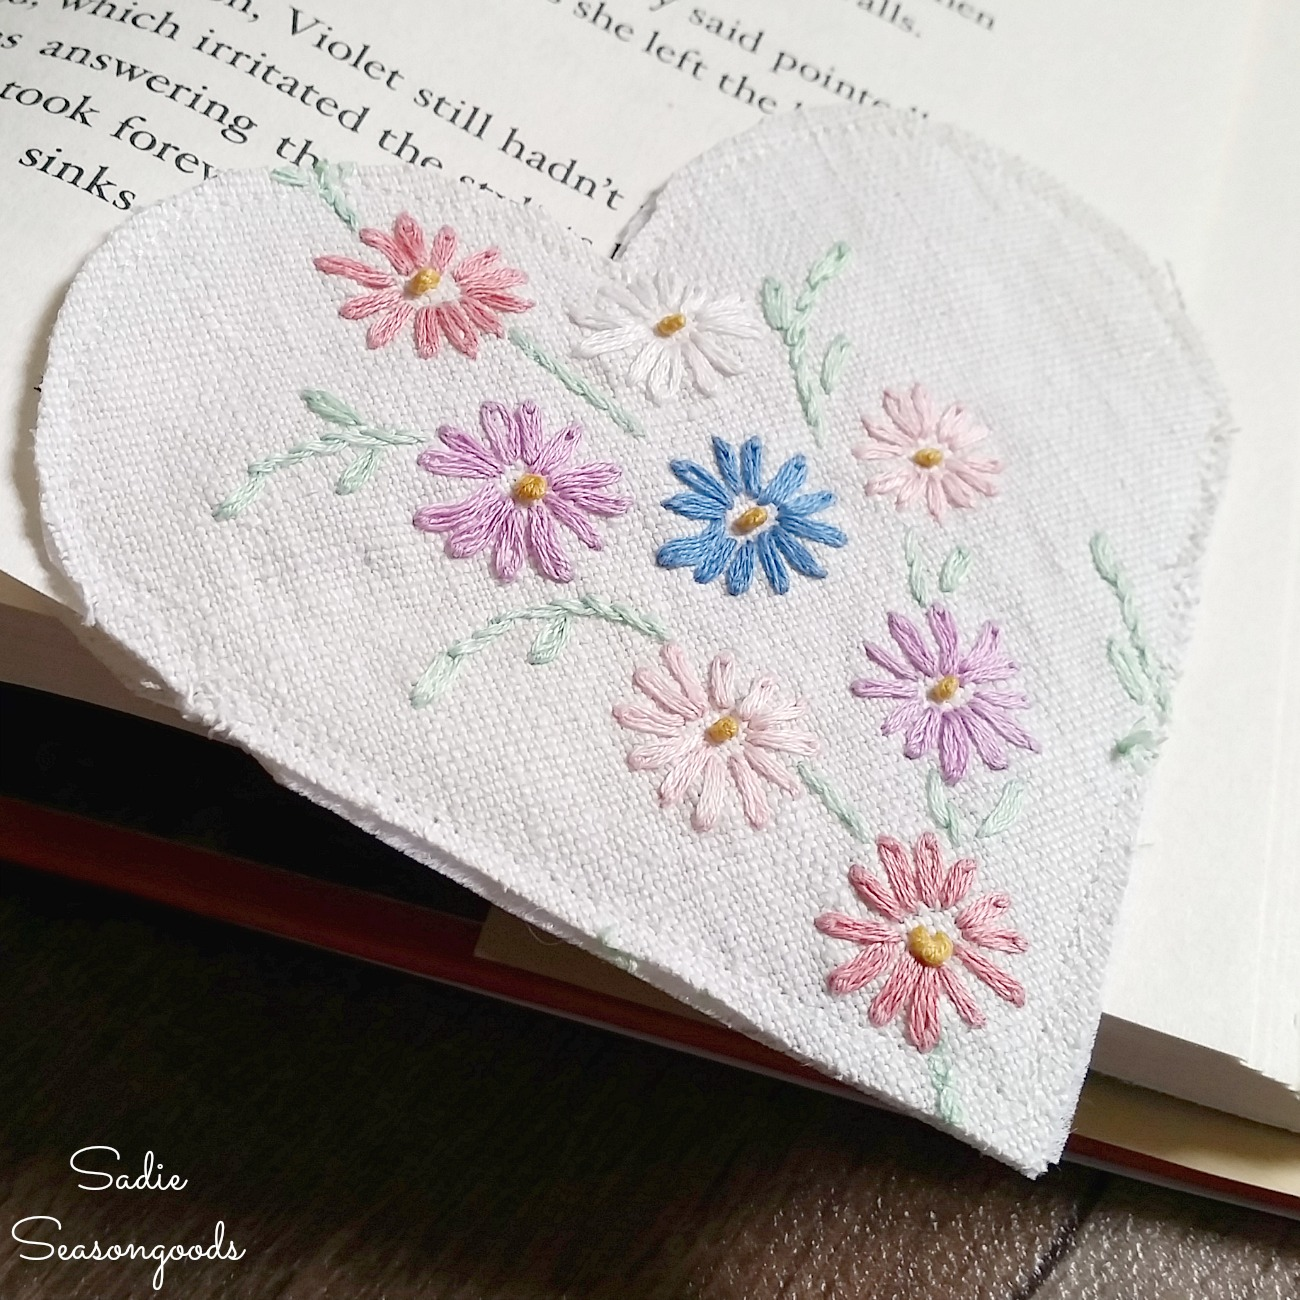 Making a Bookmarker from Embroidered Linens that are Damaged